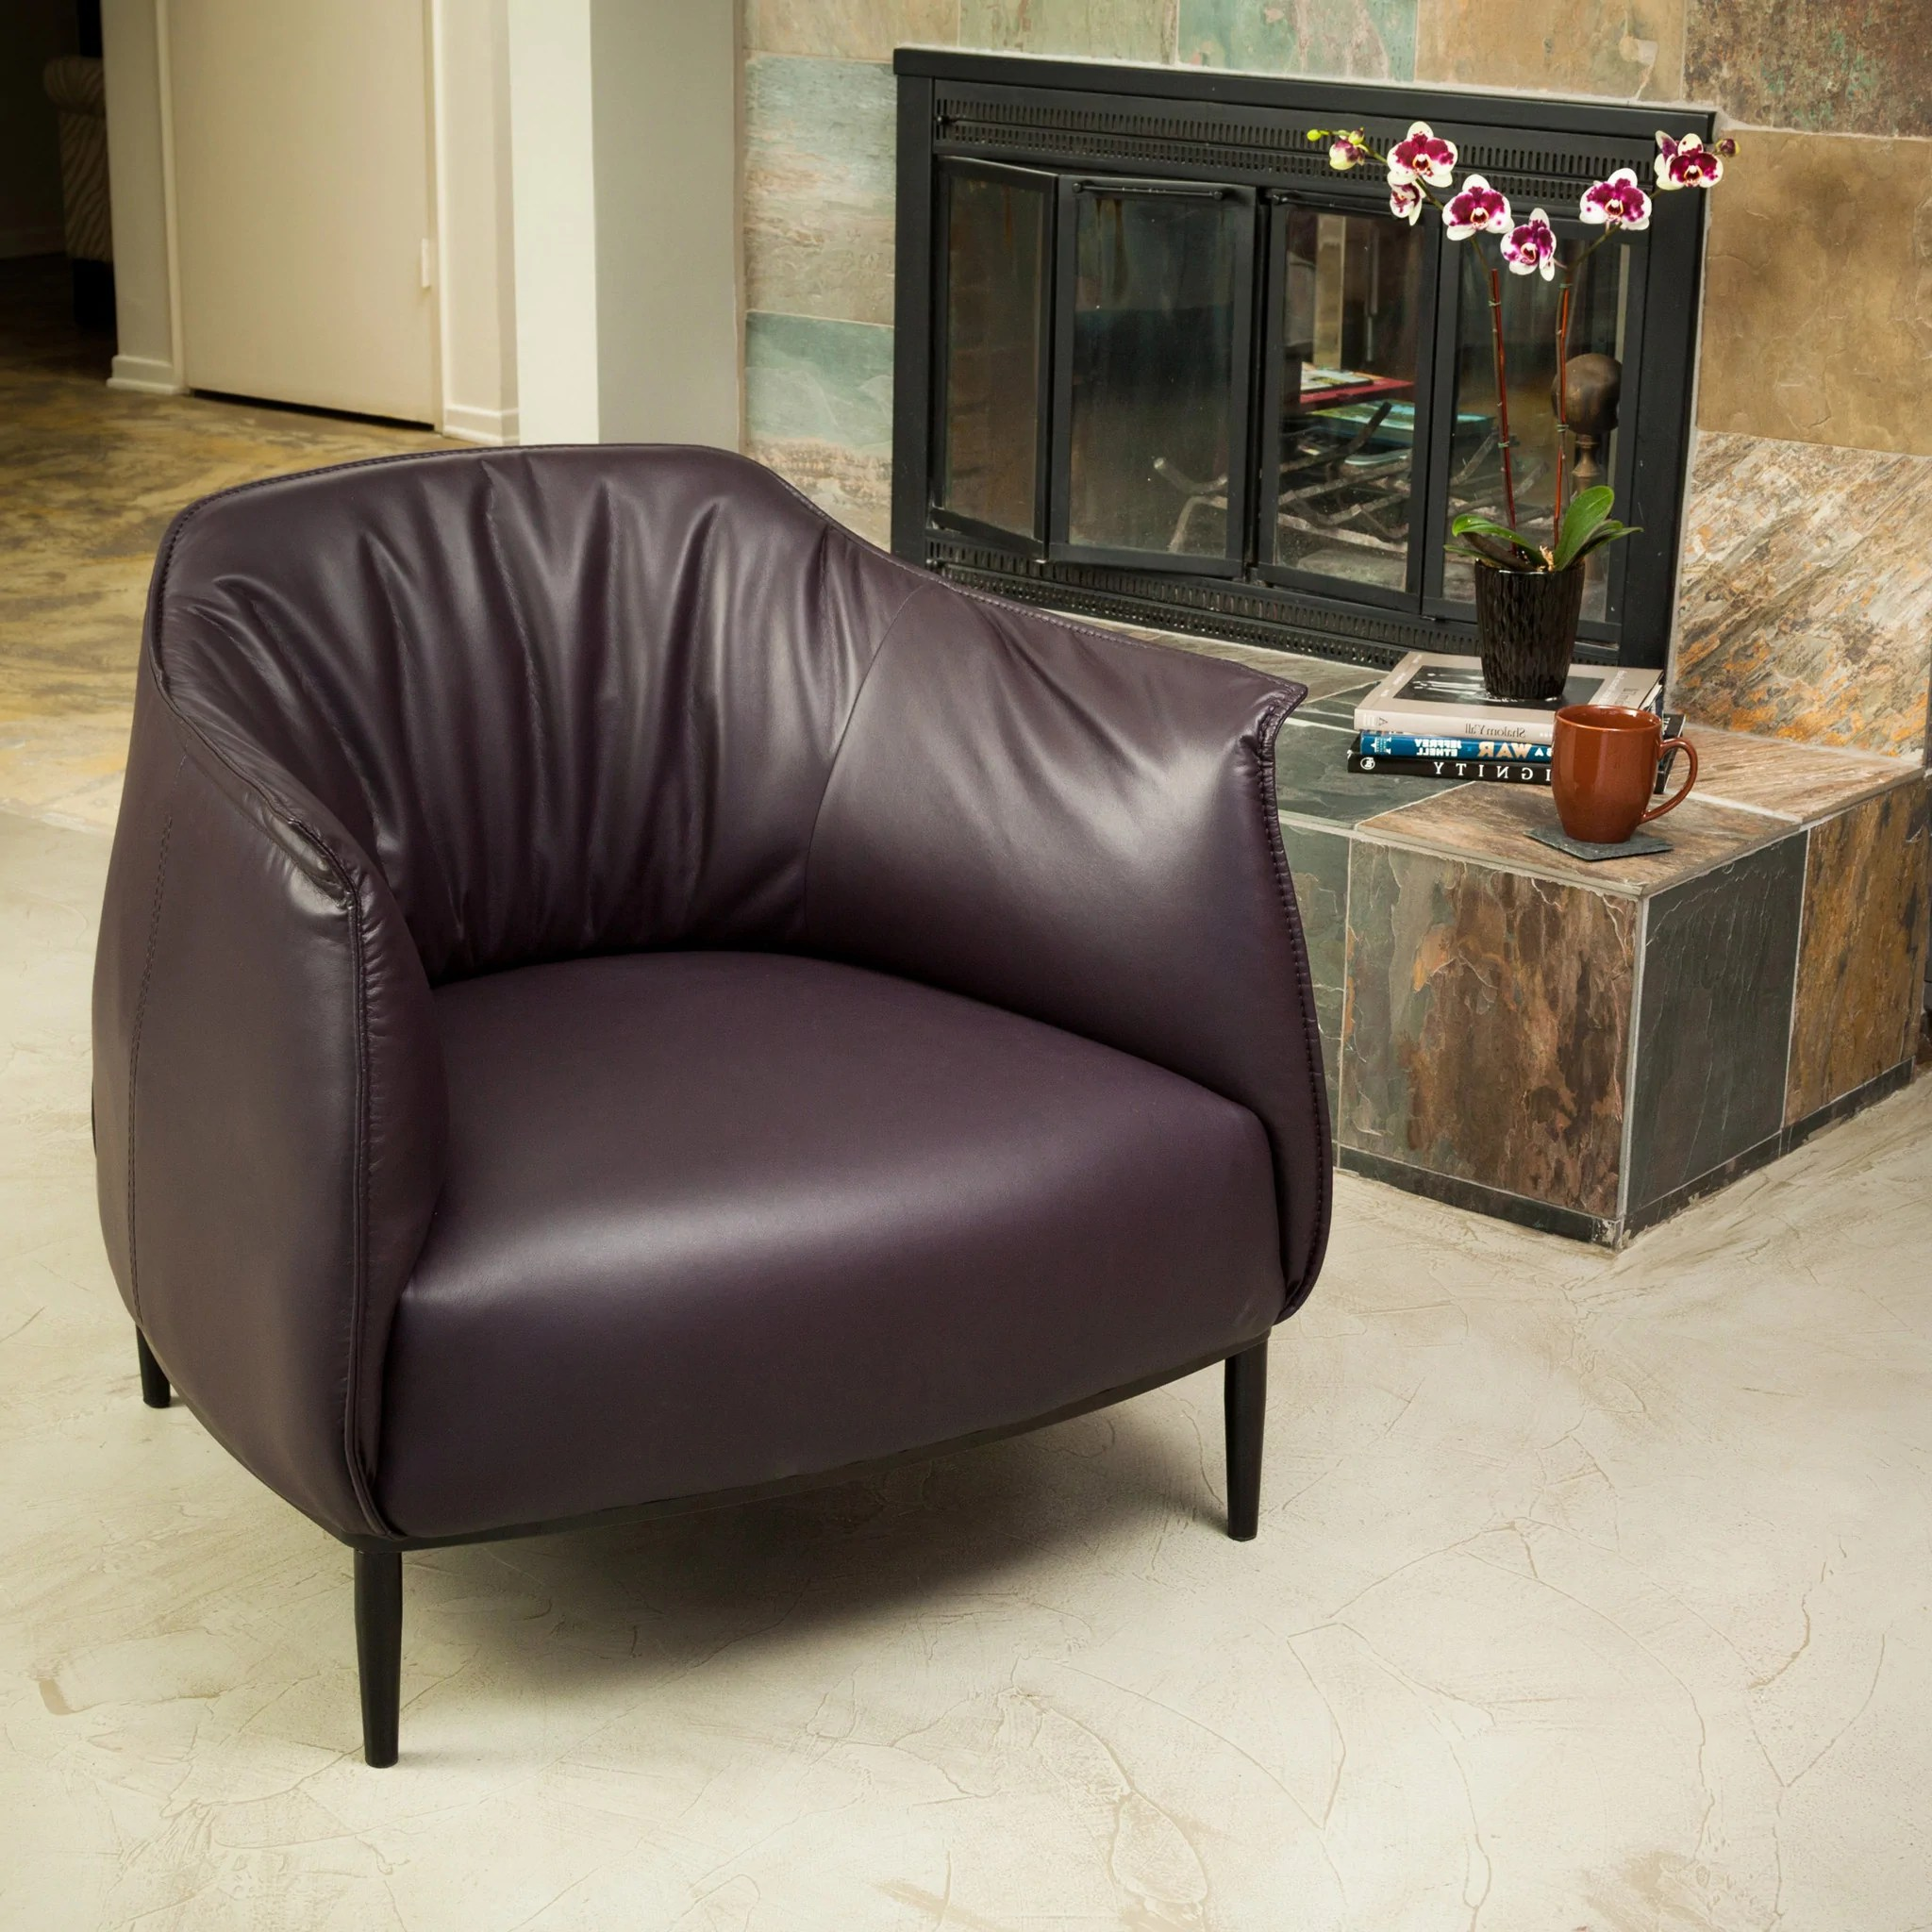 purple accent chair white plastic chairs for wedding awesome rtty1